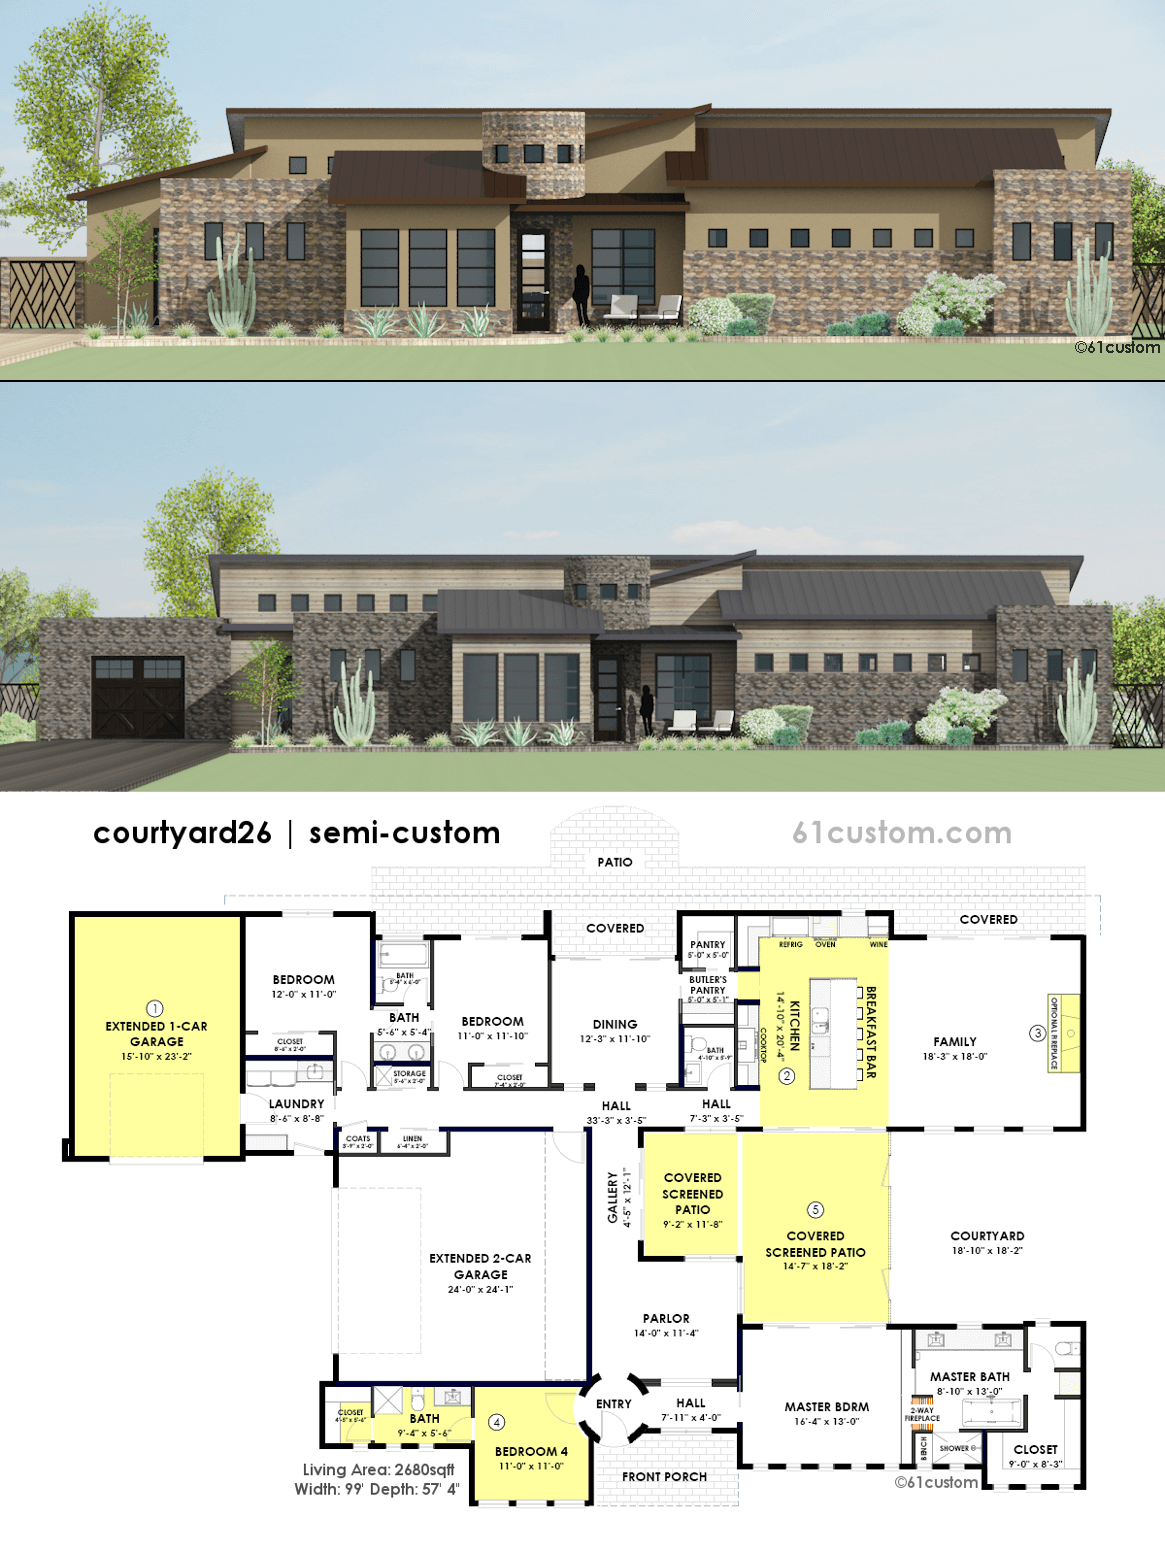 Contemporary side courtyard house plan 61custom New custom home plans